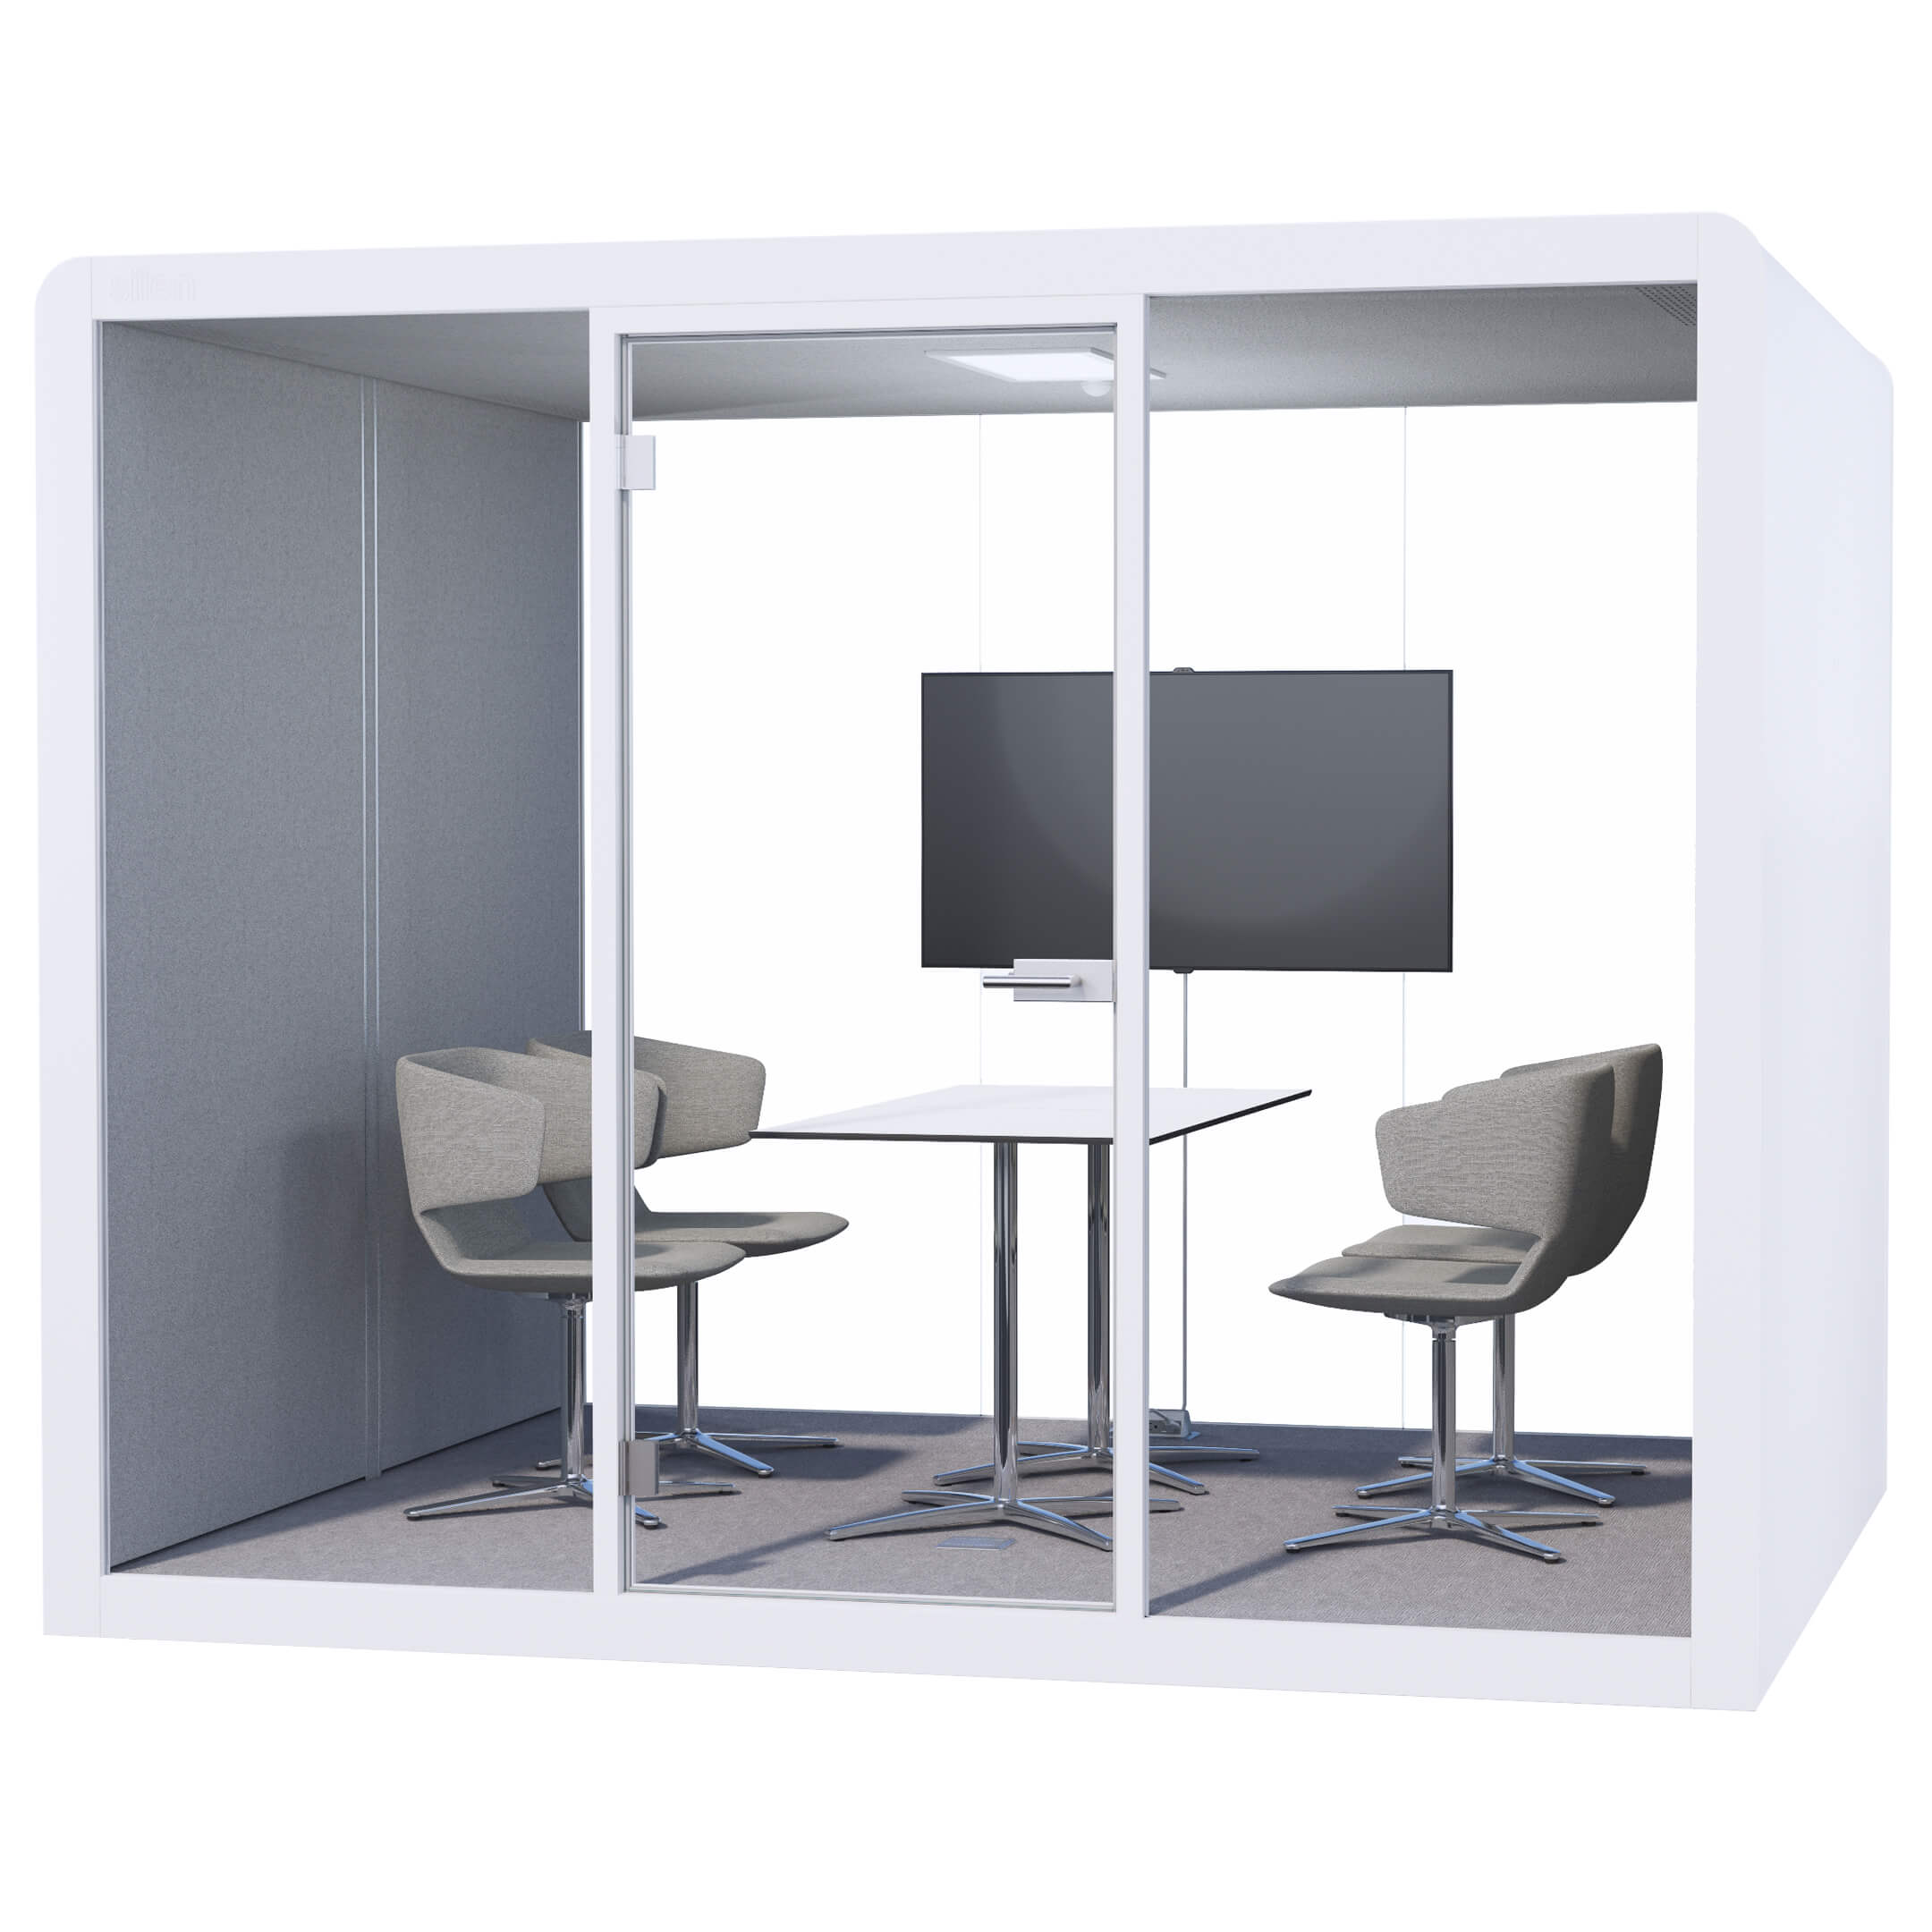 LIGHT GREY SPACE XL - VIDEO CONFERENCING SETUP